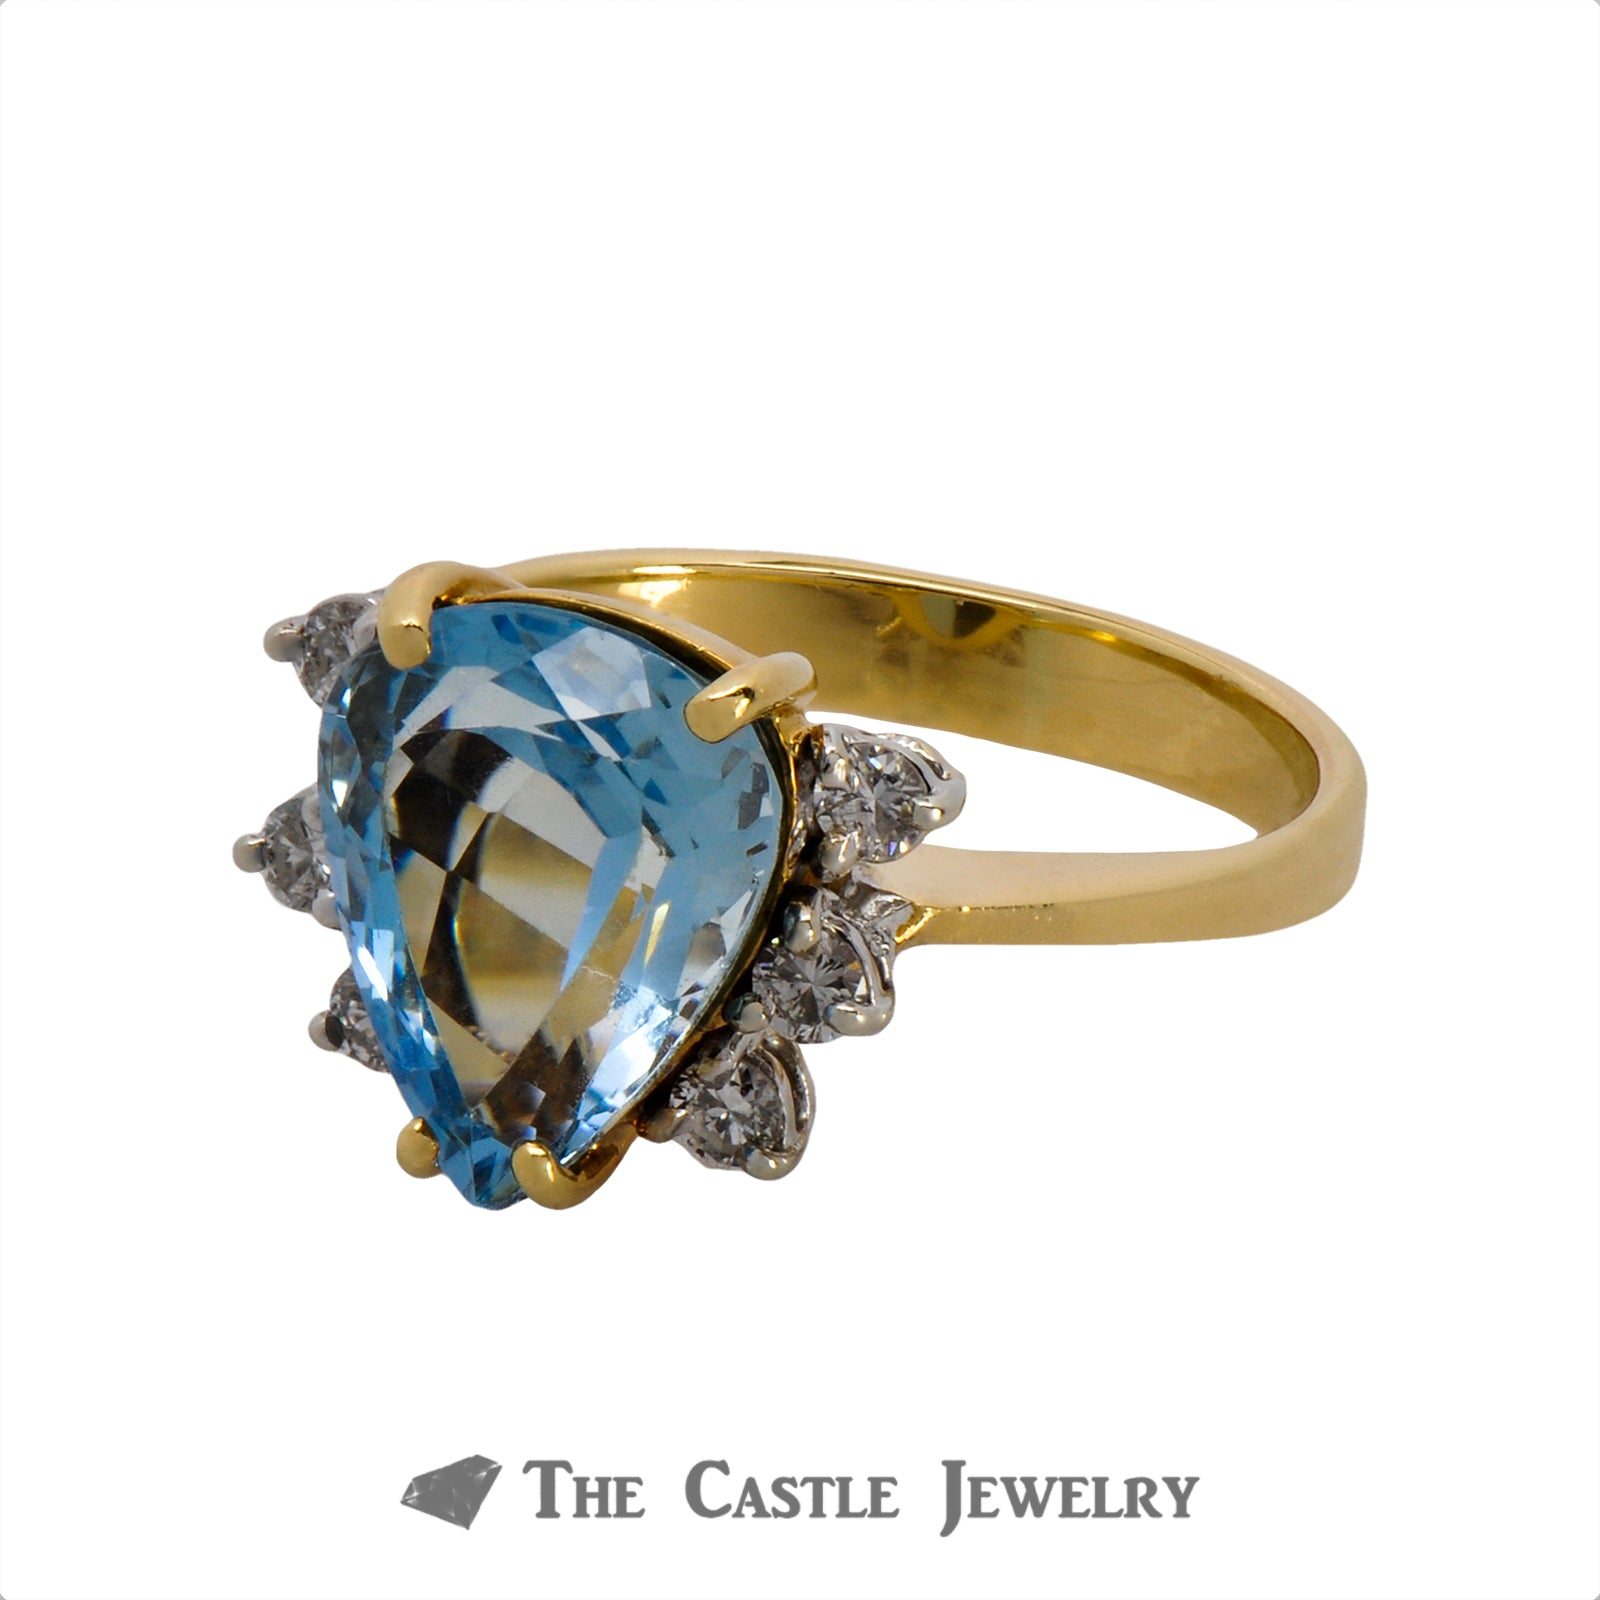 Vibrant Pear Cut Aquamarine Ring with Round Diamond Accents in 18k Yellow Gold-2